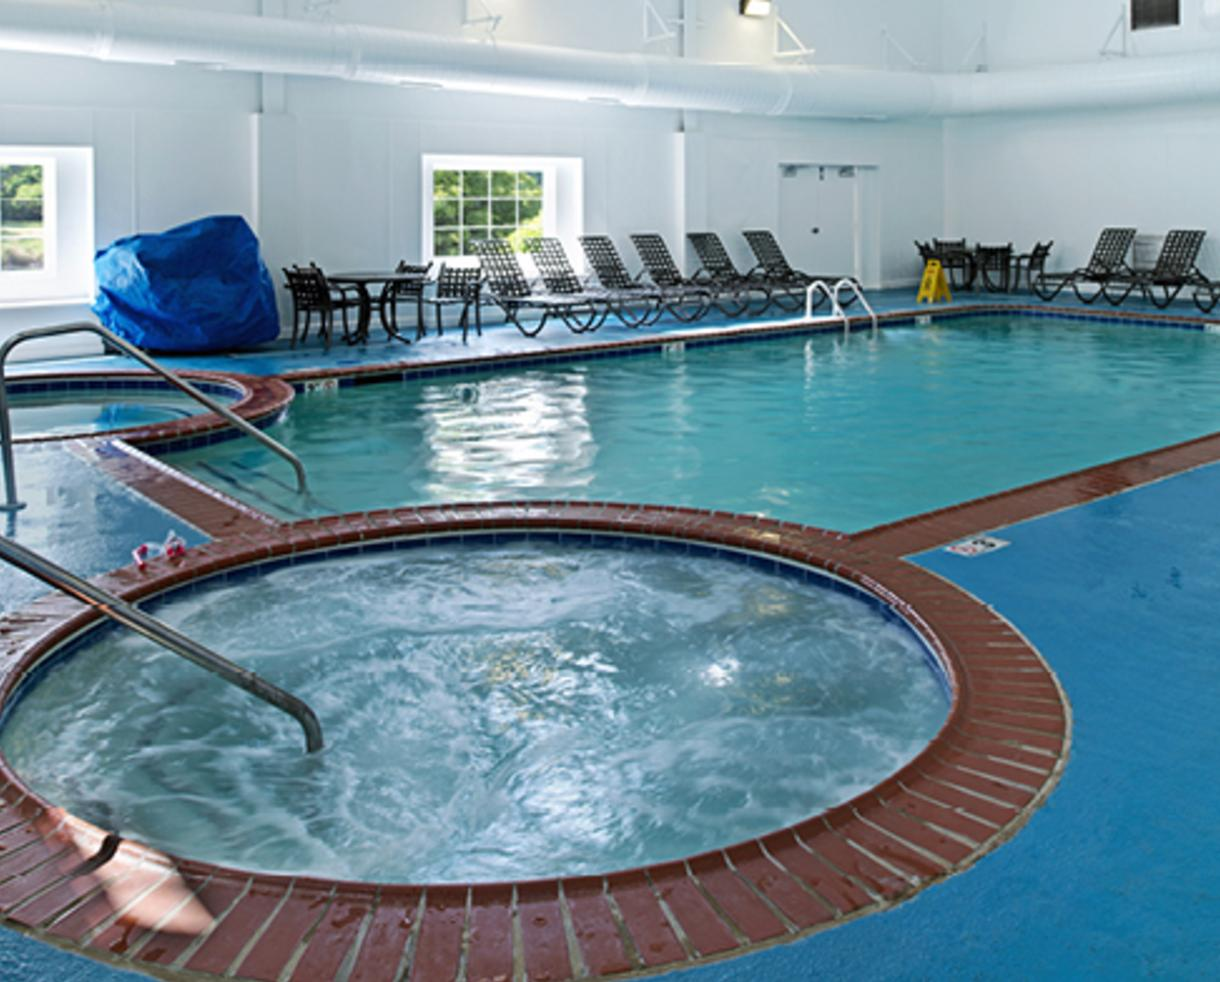 $189+ for 3-Night Getaway in a 1 or 2 Bedroom Condo + Daily $25 Restaurant Vouchers at The Historic Powhatan Resort in Williamsburg, VA - Valid Through March! (Up to 55% Off)